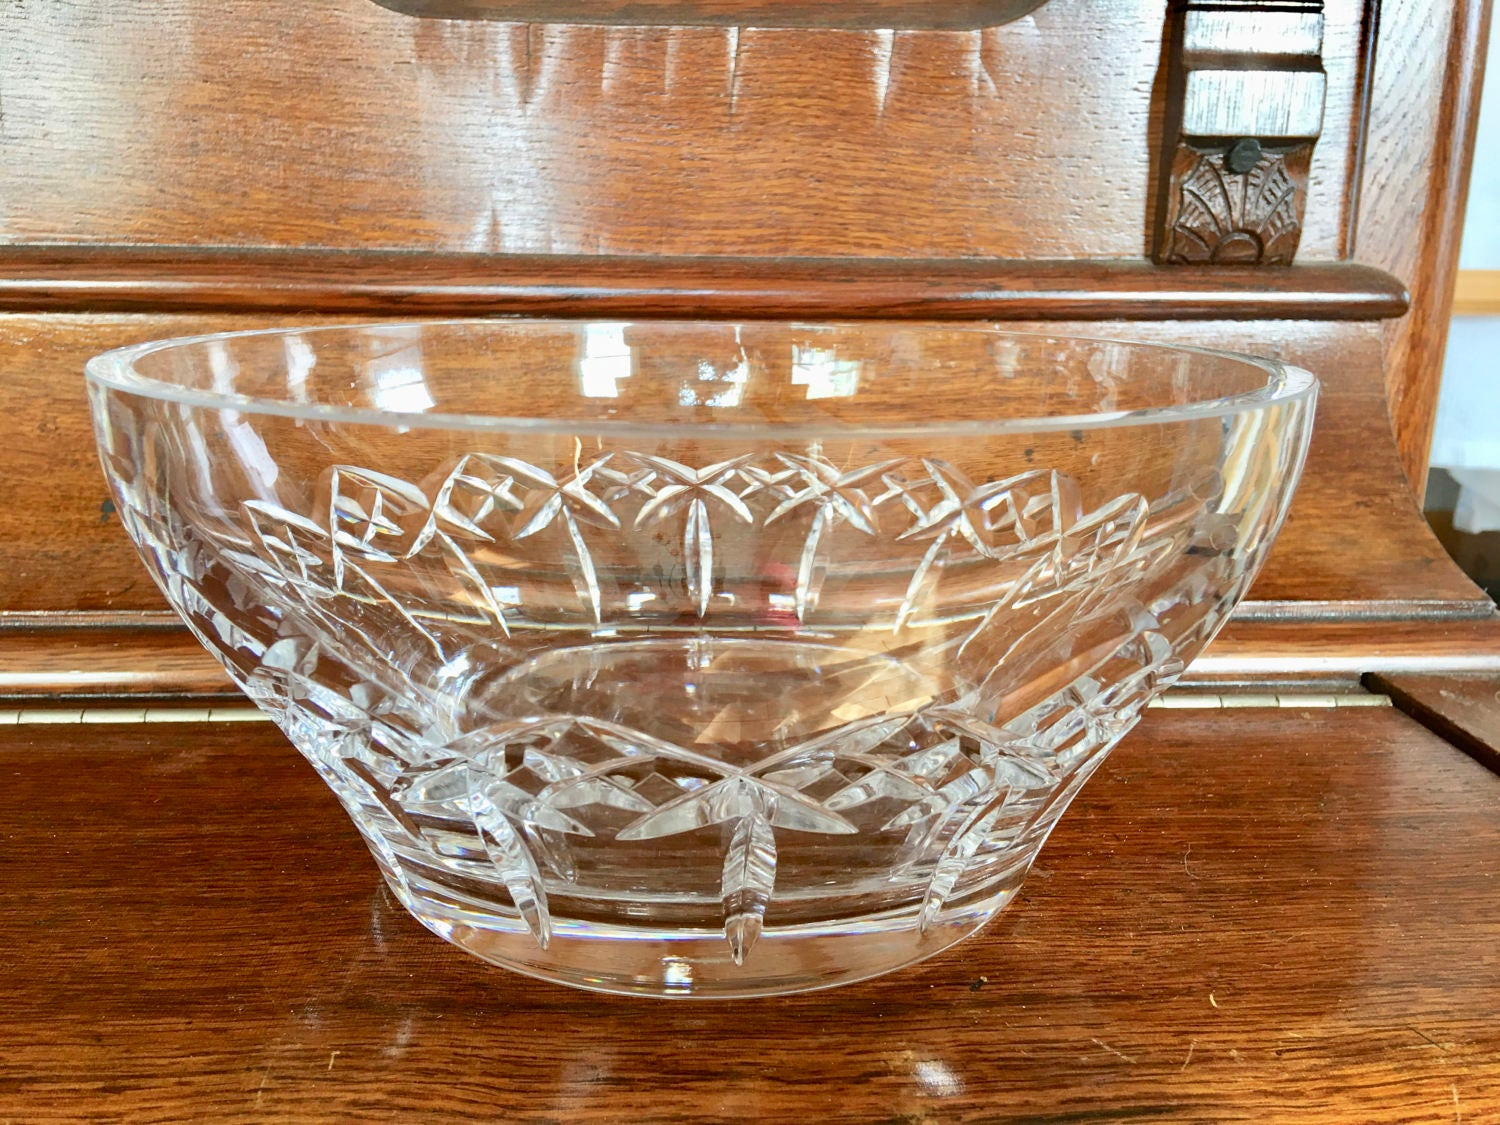 Lenox lead crystal vintage bowl centerpiece wedding gift